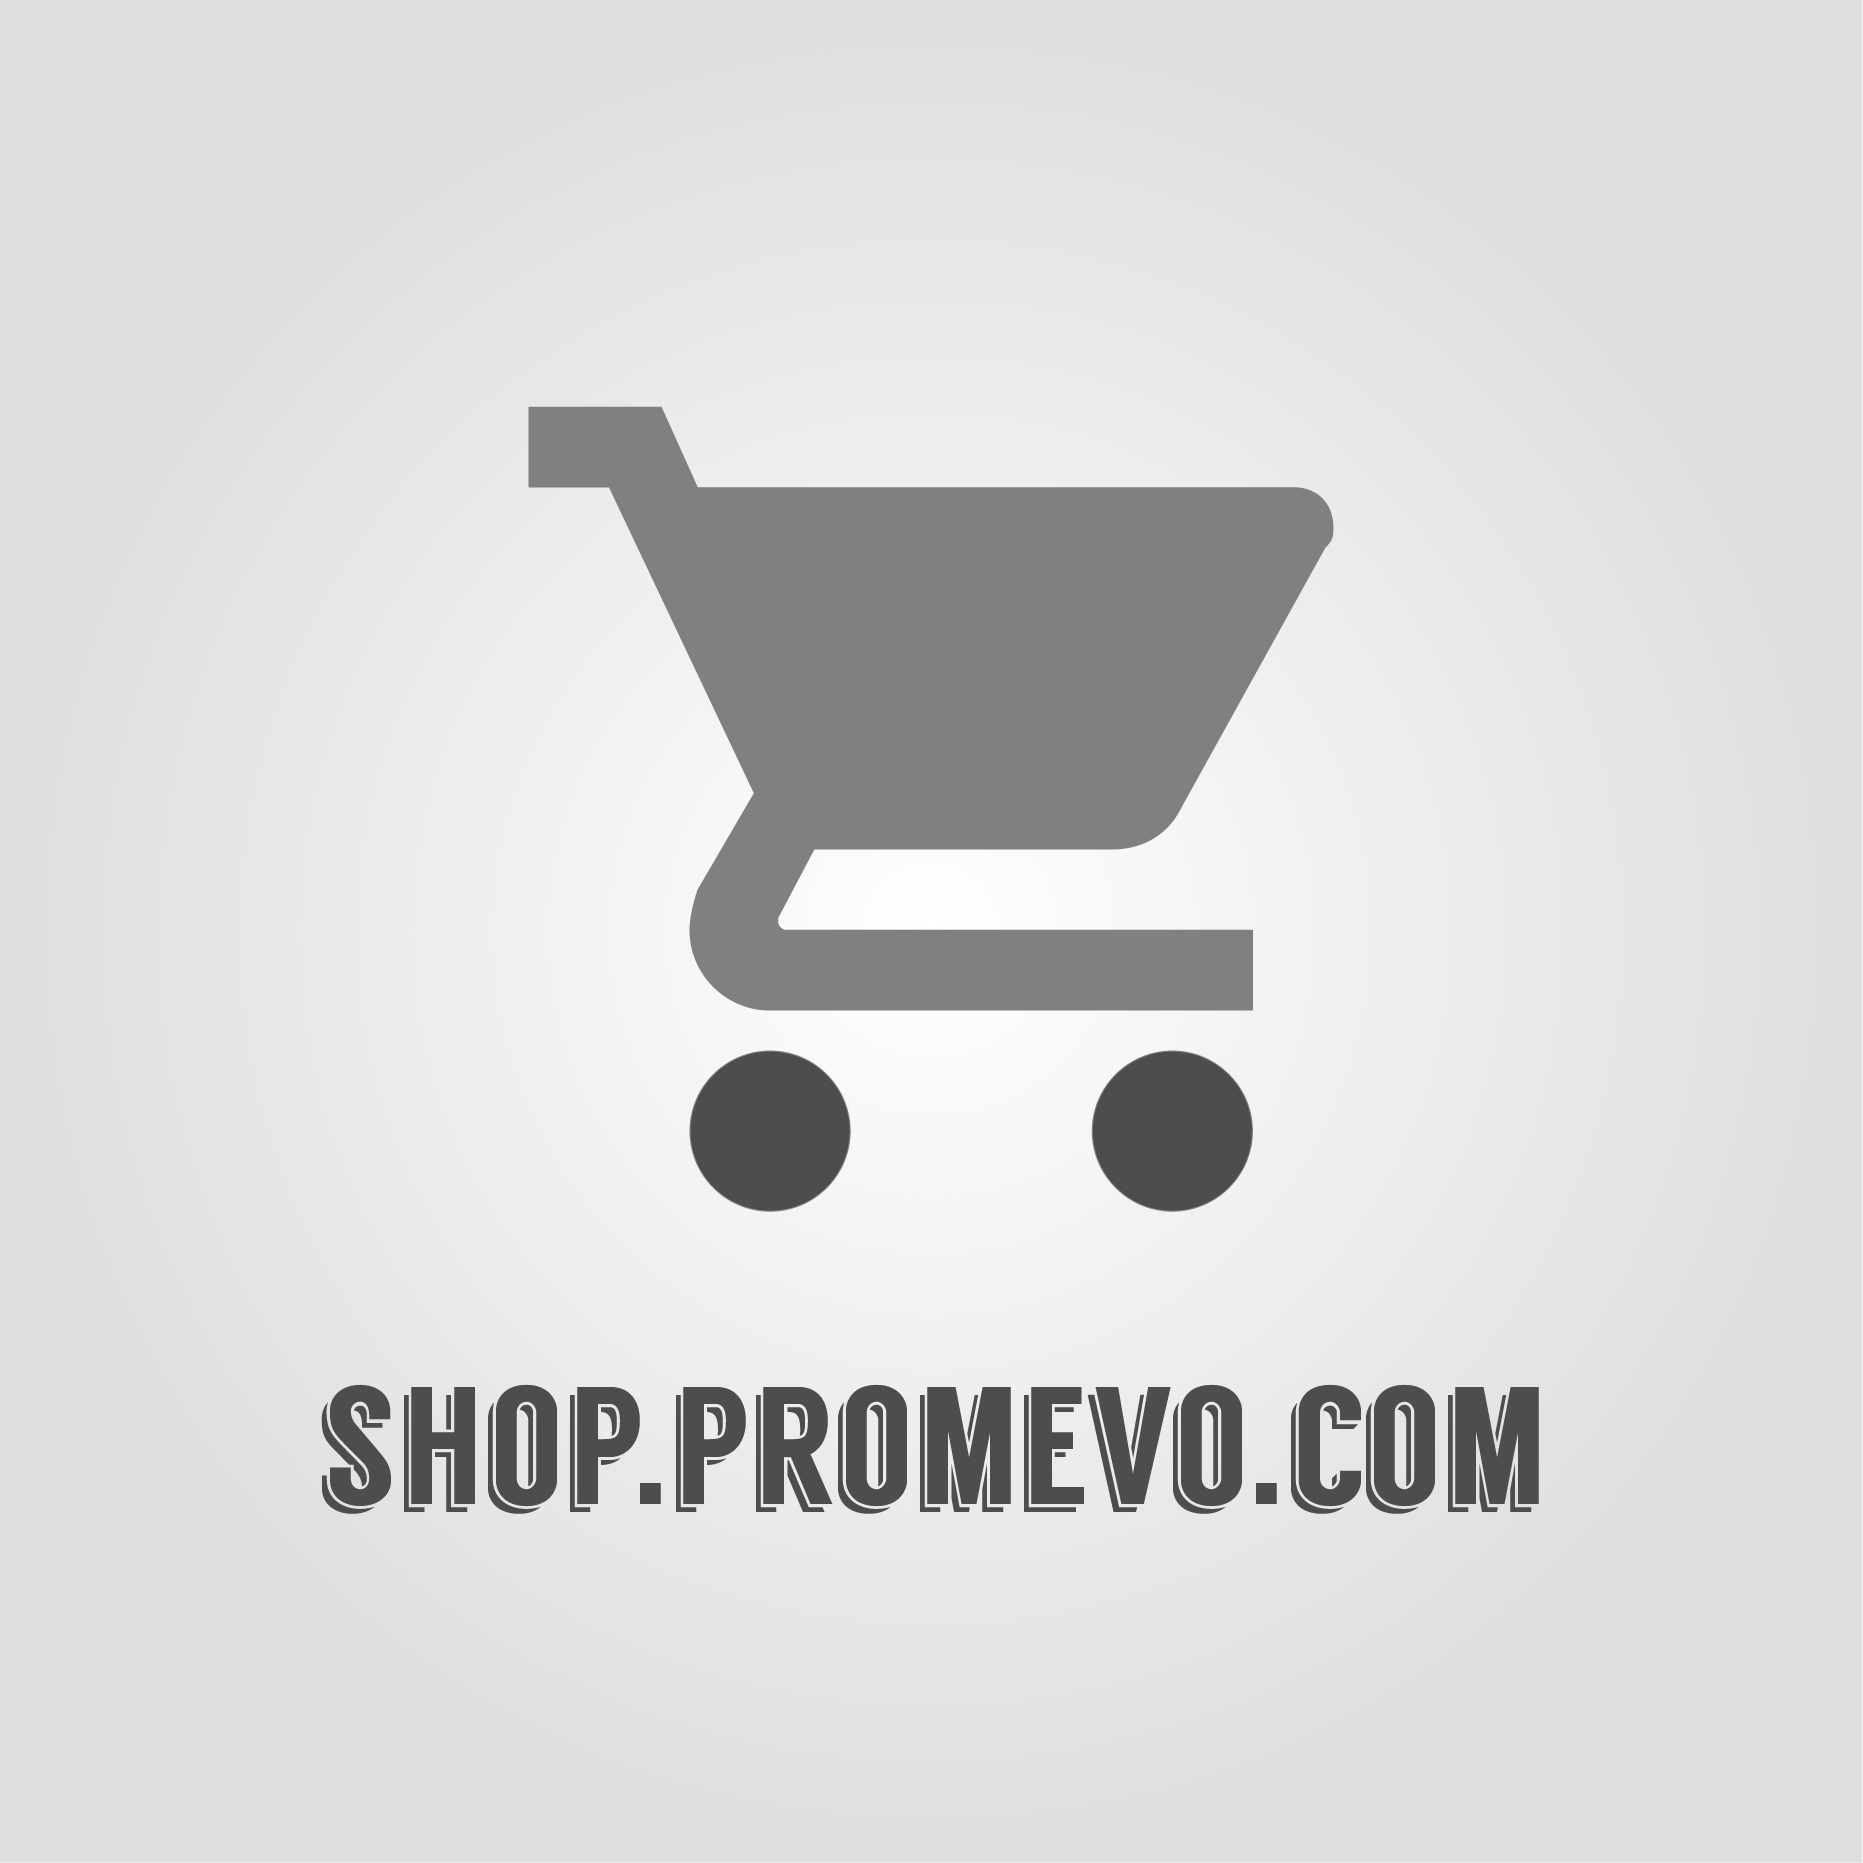 Cart icon with shop.promevo.com text